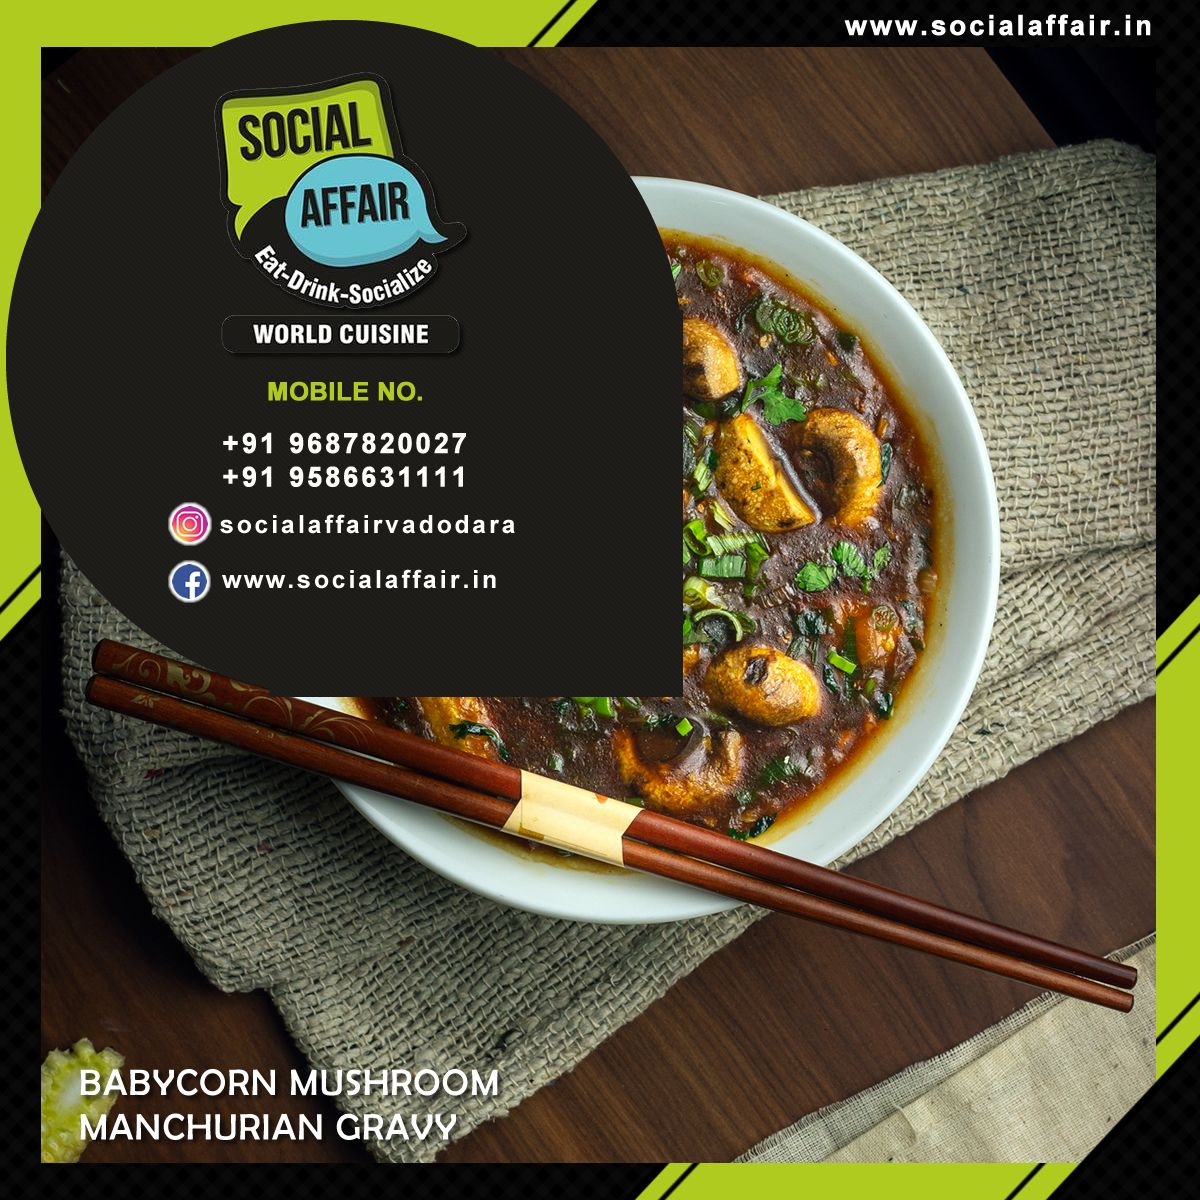 Best Restaurant In Vadodara In 2020 World Cuisine Manchurian Gravy Cuisine